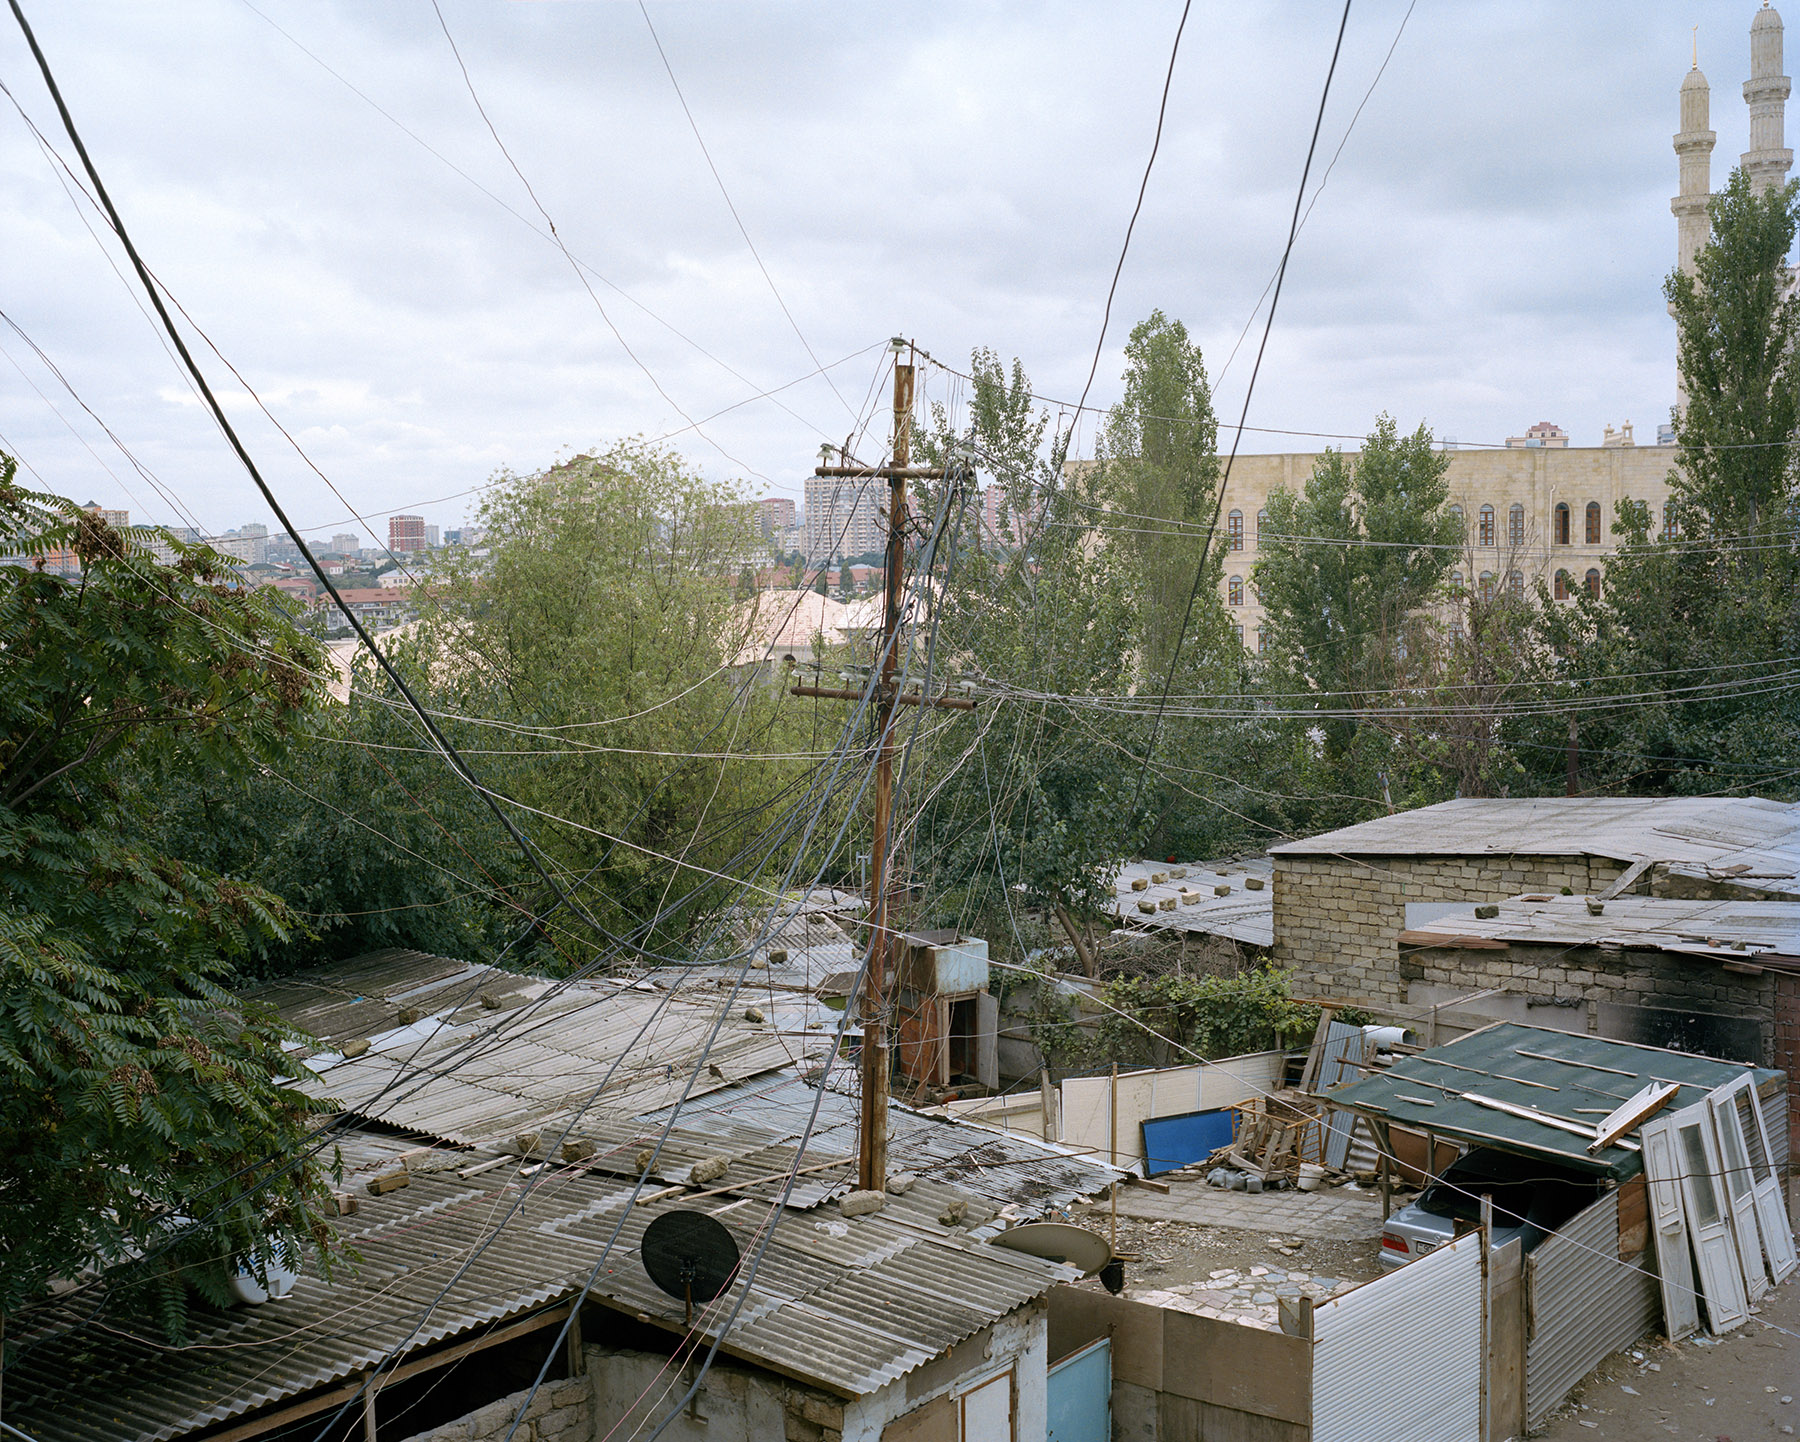 2017: The homes of internally displaced persons from Nagorno-Karabakh are illegally tapped into the city's electrical grid by a tangle of wires.  The homes are directly behind Heydar Aliyev Mosque, the largest mosque in the South Caucasus.